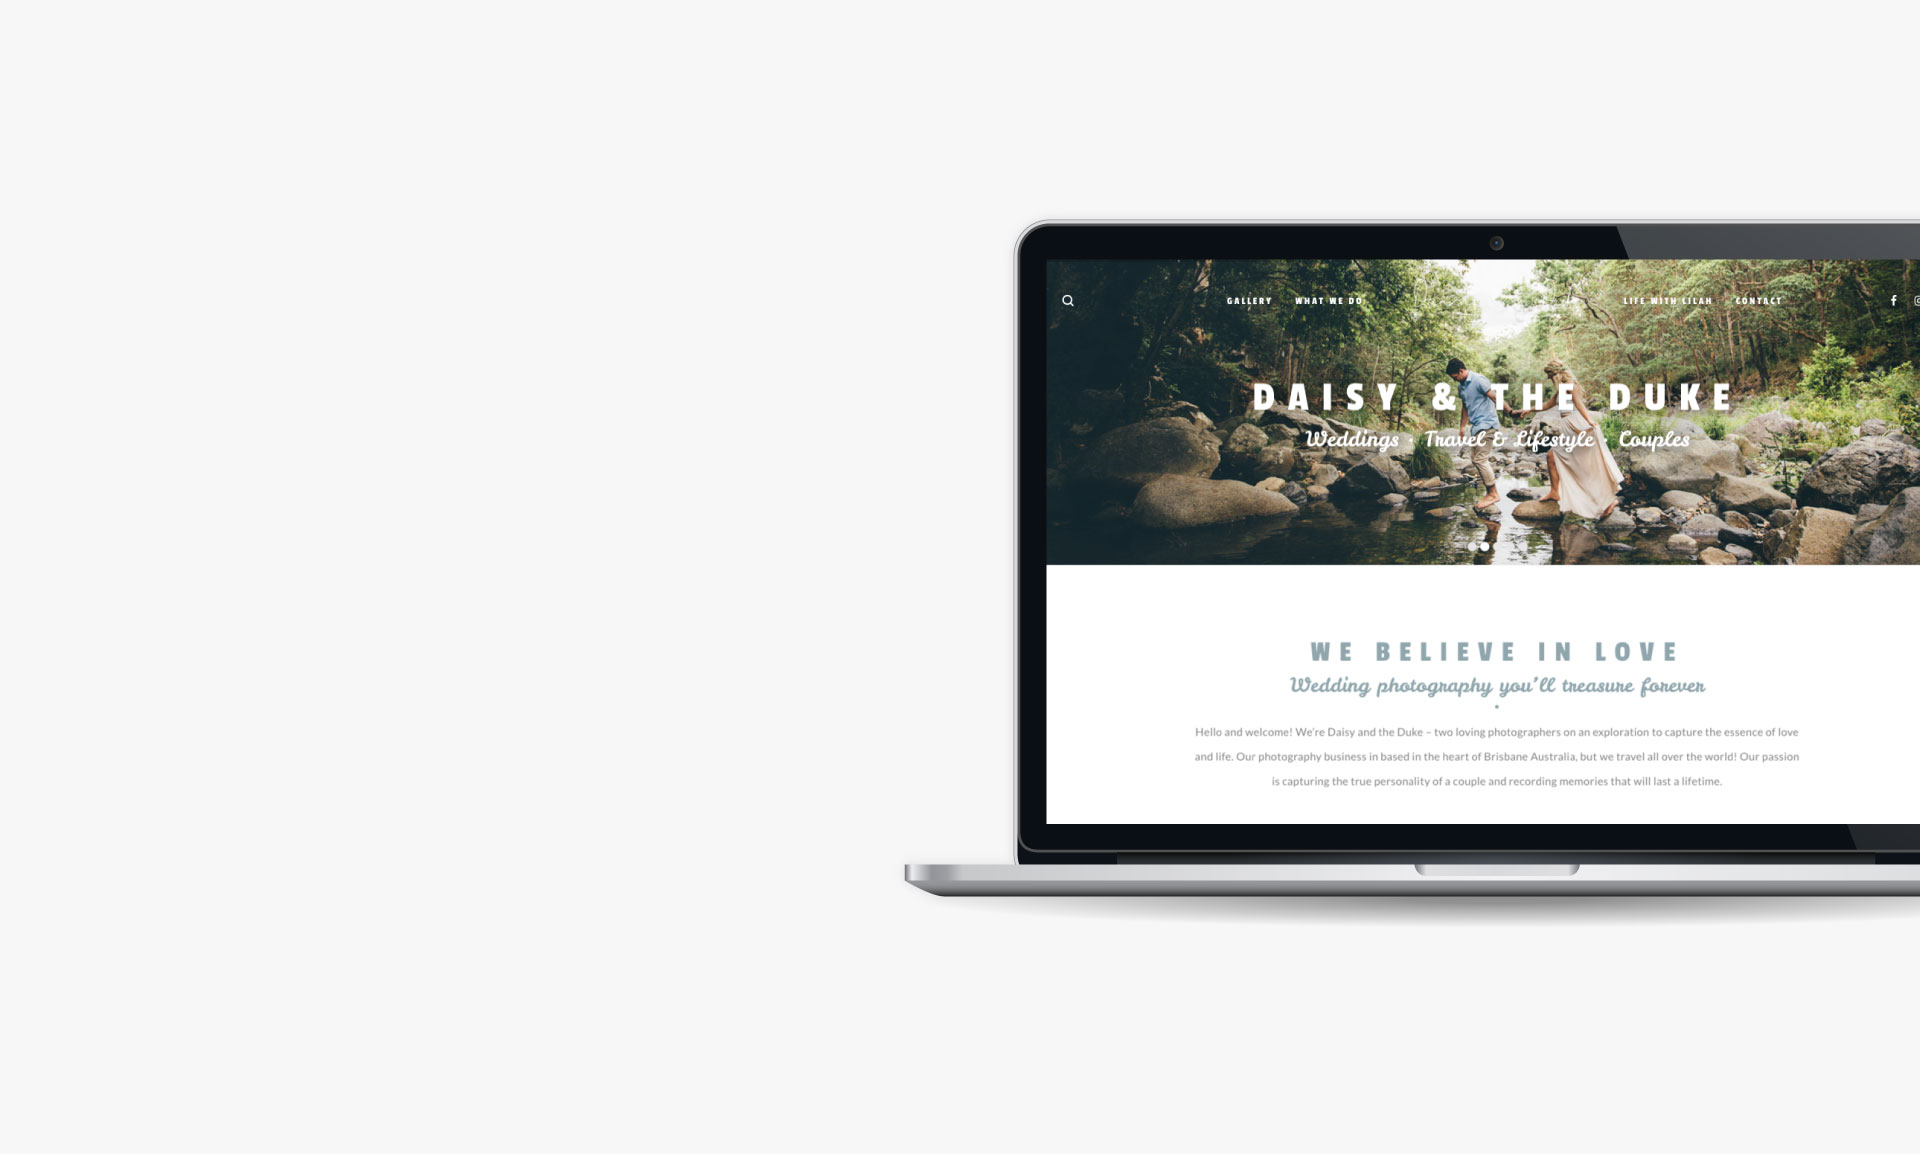 daisy-website-macbook-half-digital-marketing-ronin-client